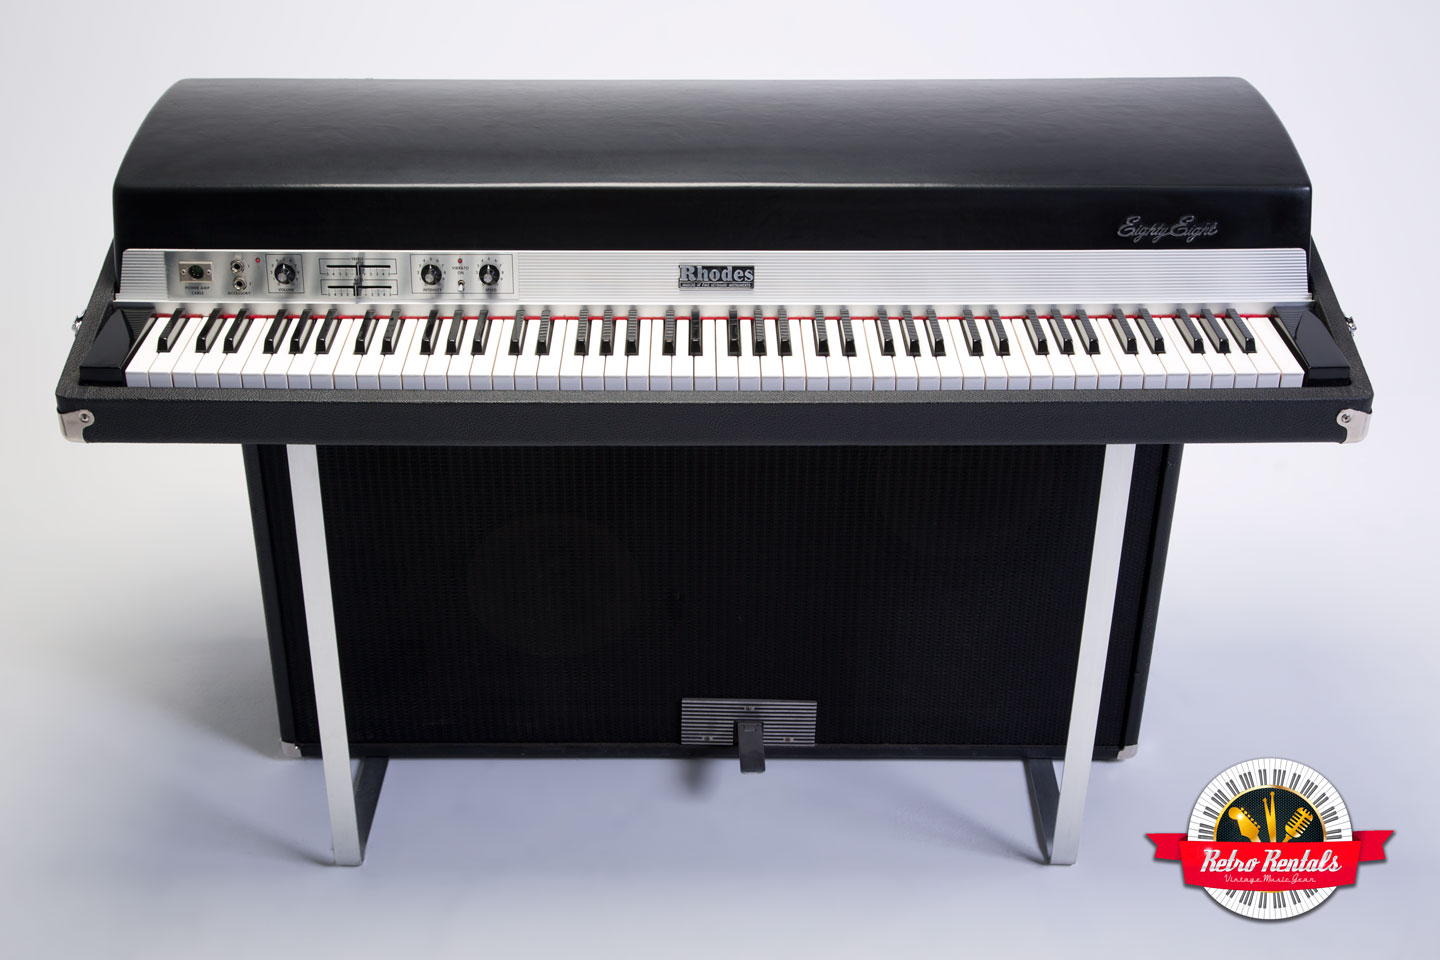 1978 fender rhodes suitcase 88 key retro rentals. Black Bedroom Furniture Sets. Home Design Ideas